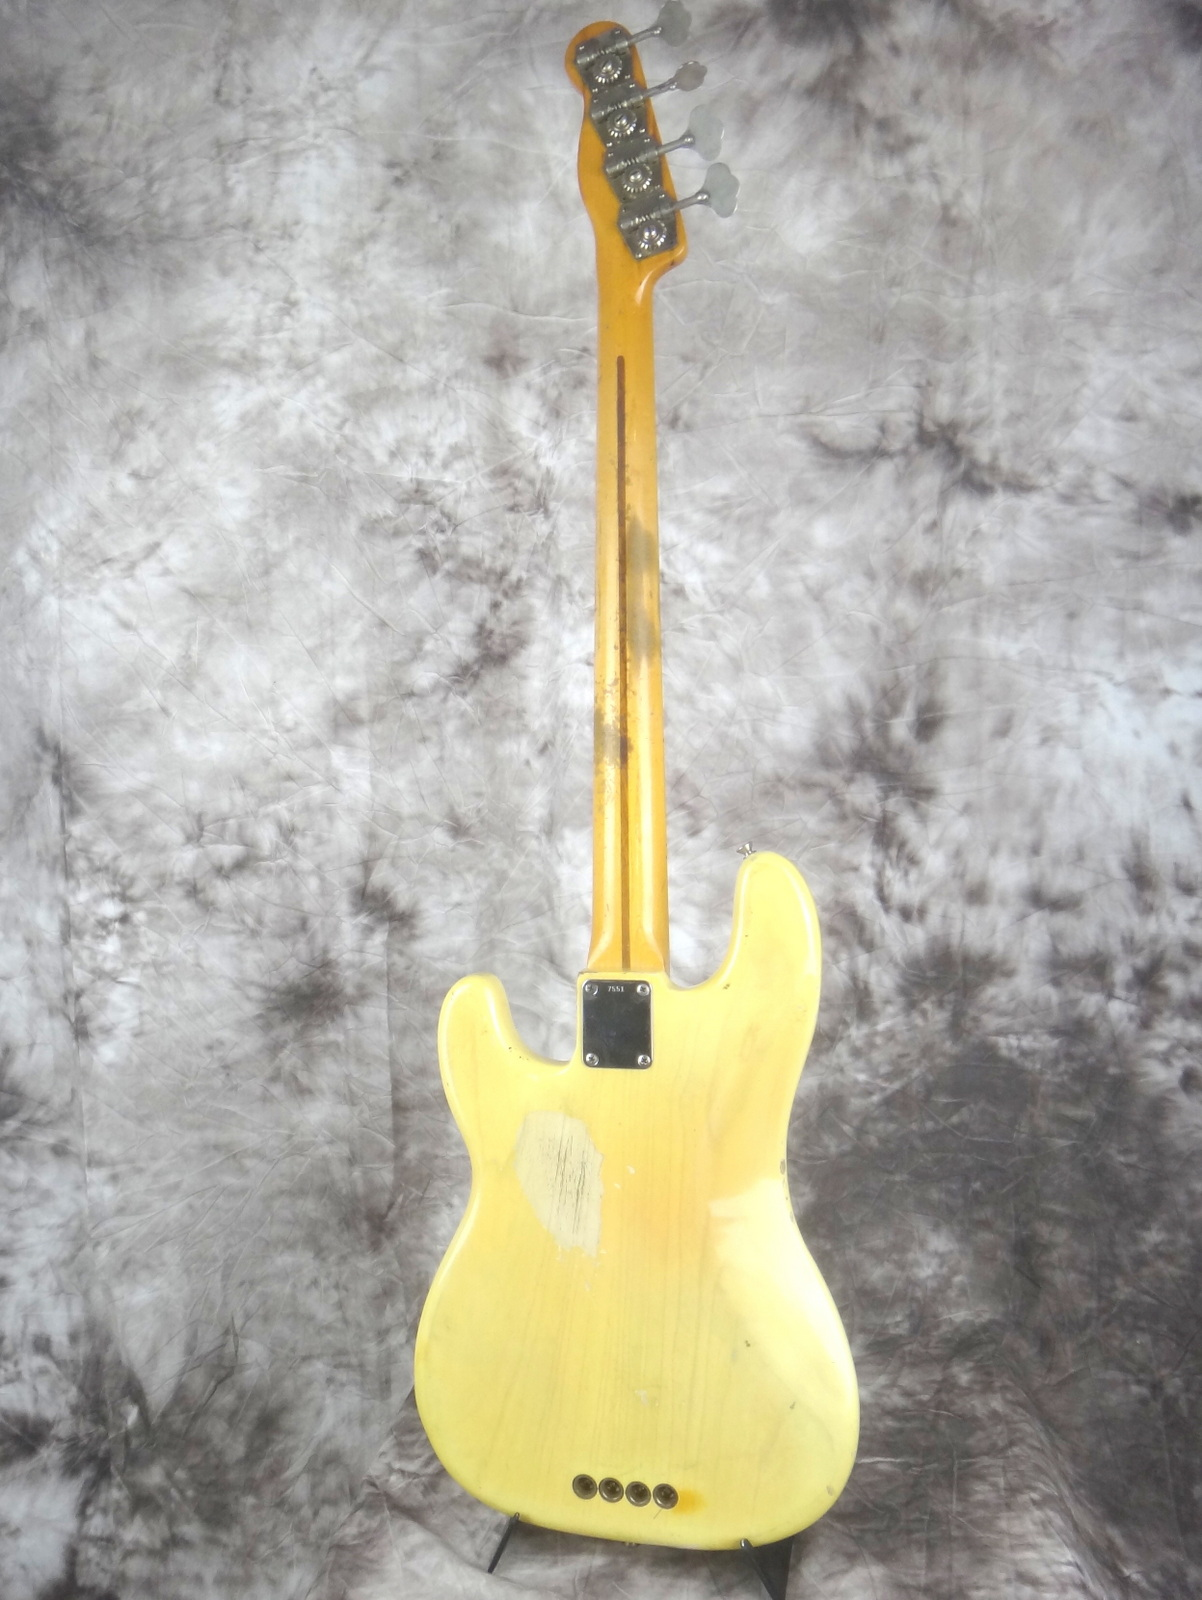 img/vintage/1599/Fender-Precision-Bass-1955-blond-004.JPG